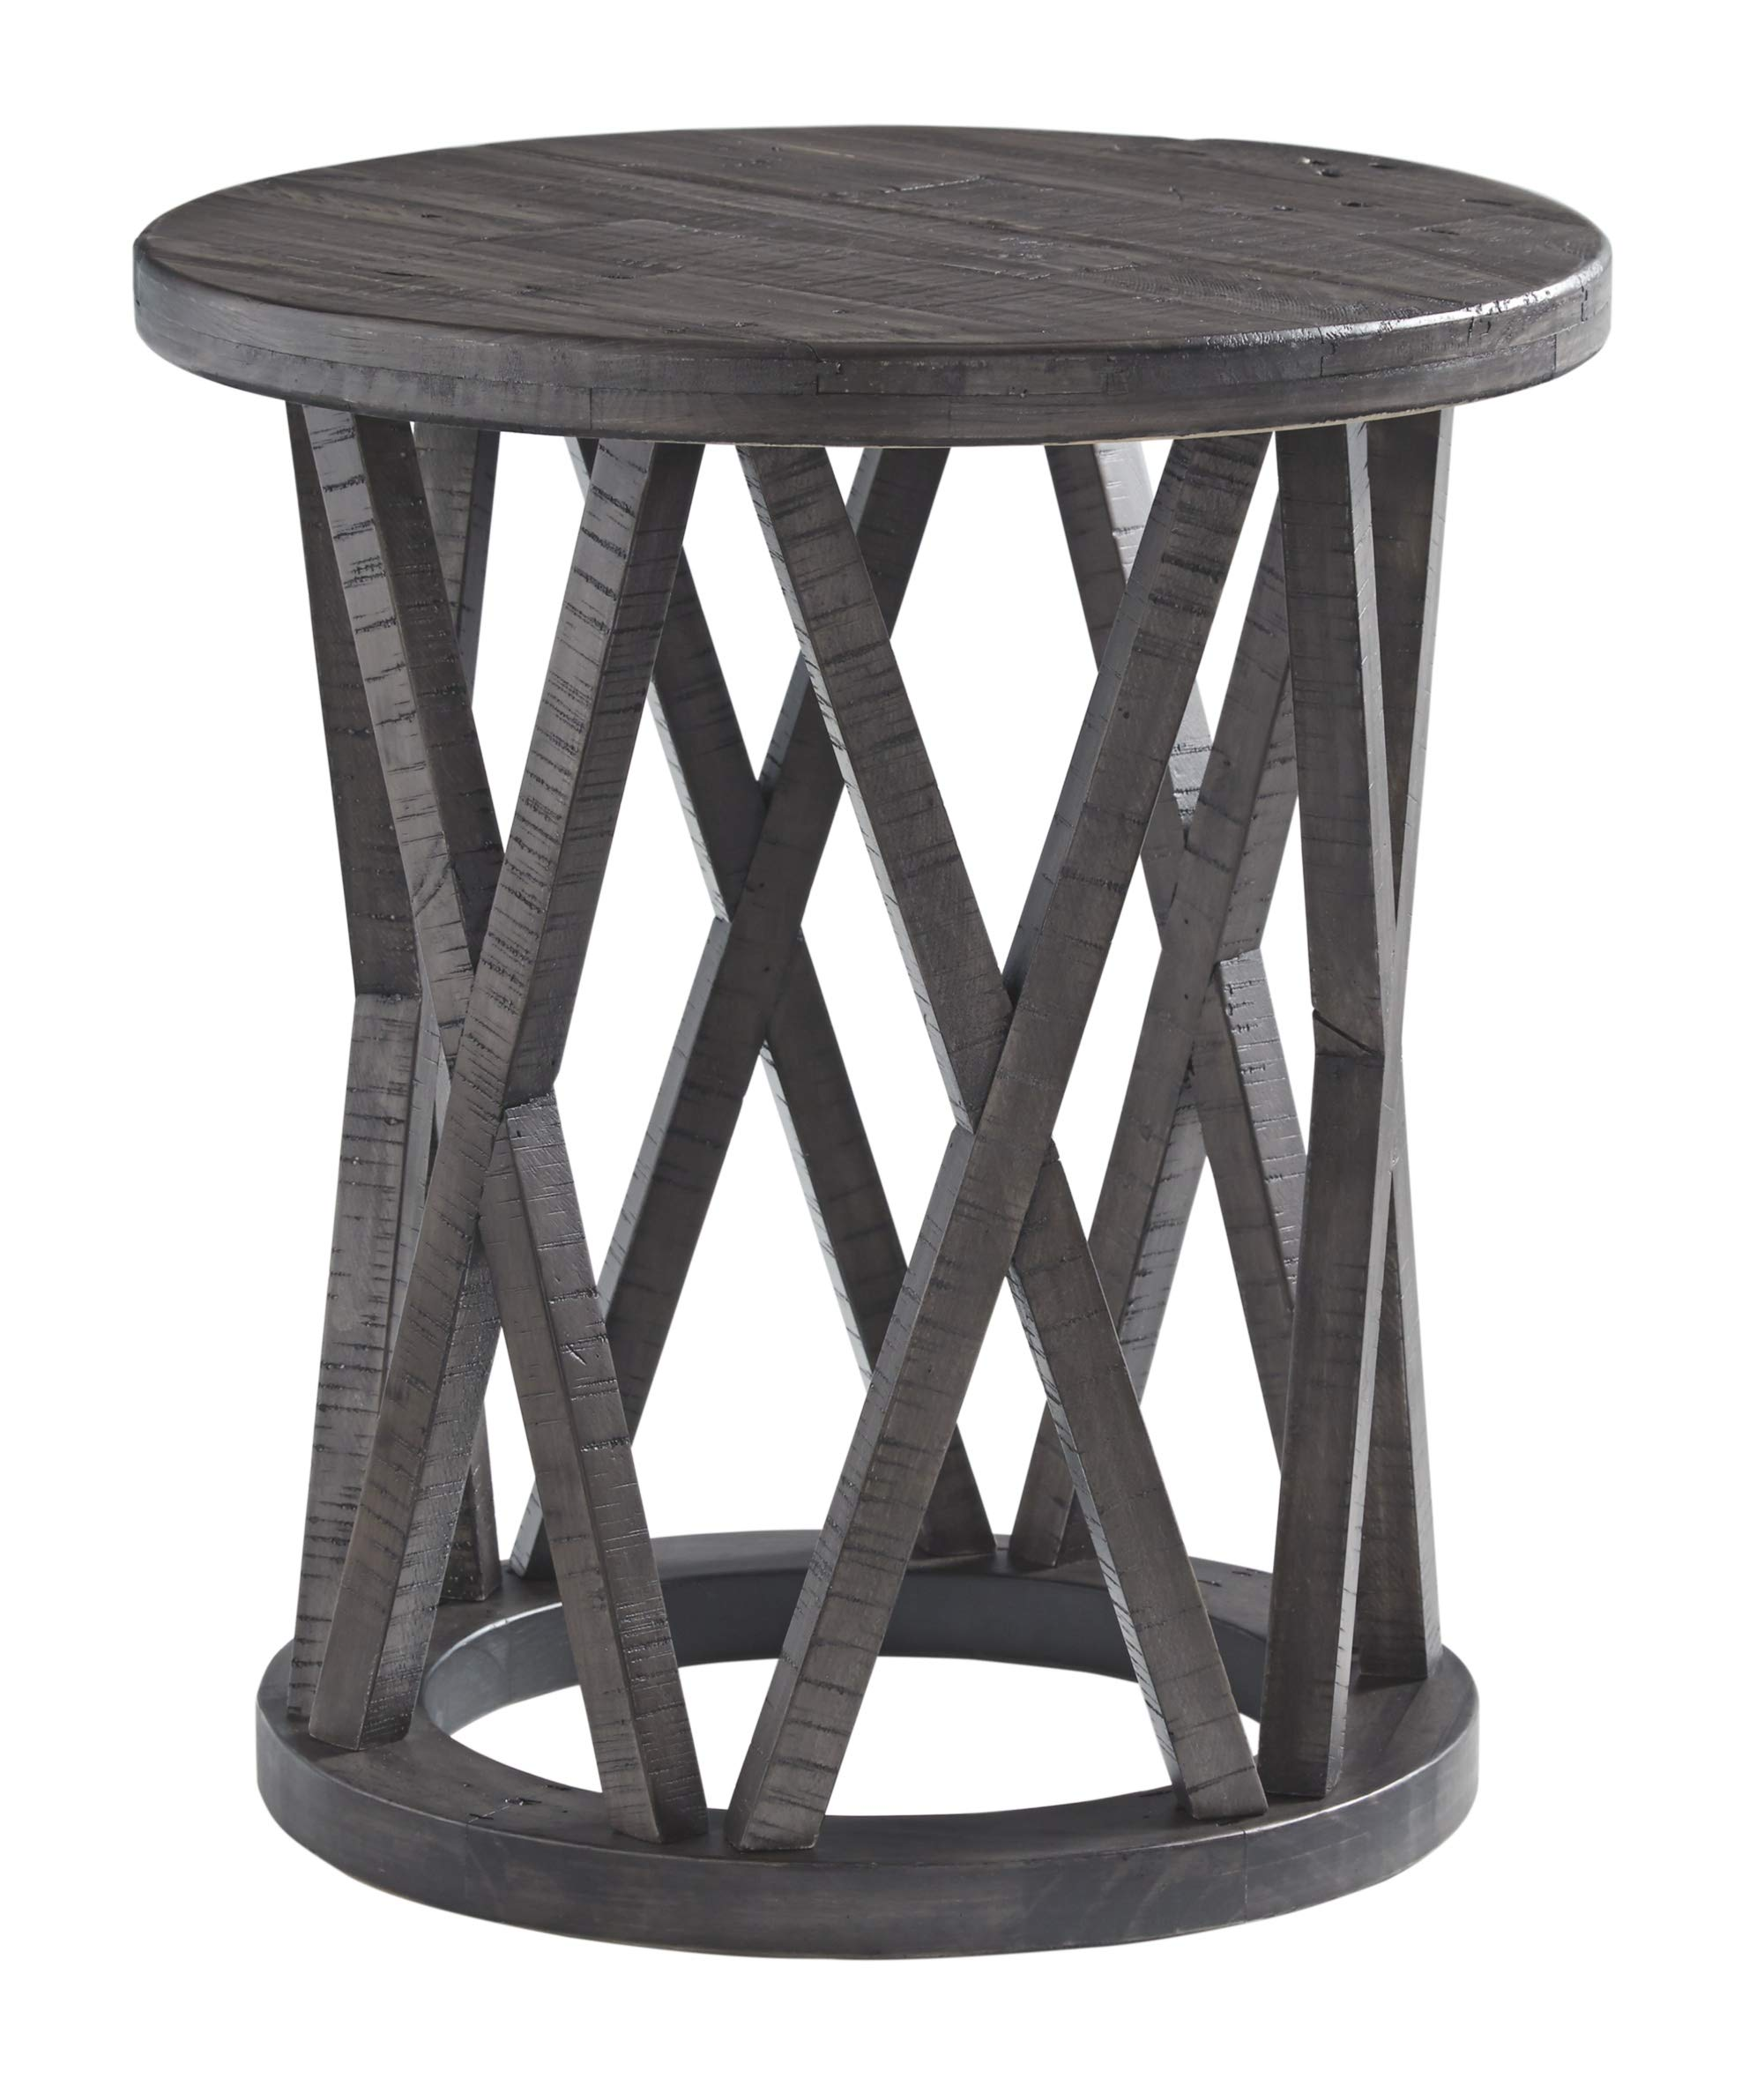 Signature Design by Ashley Sharzane Round End Table Grayish Brown by Signature Design by Ashley